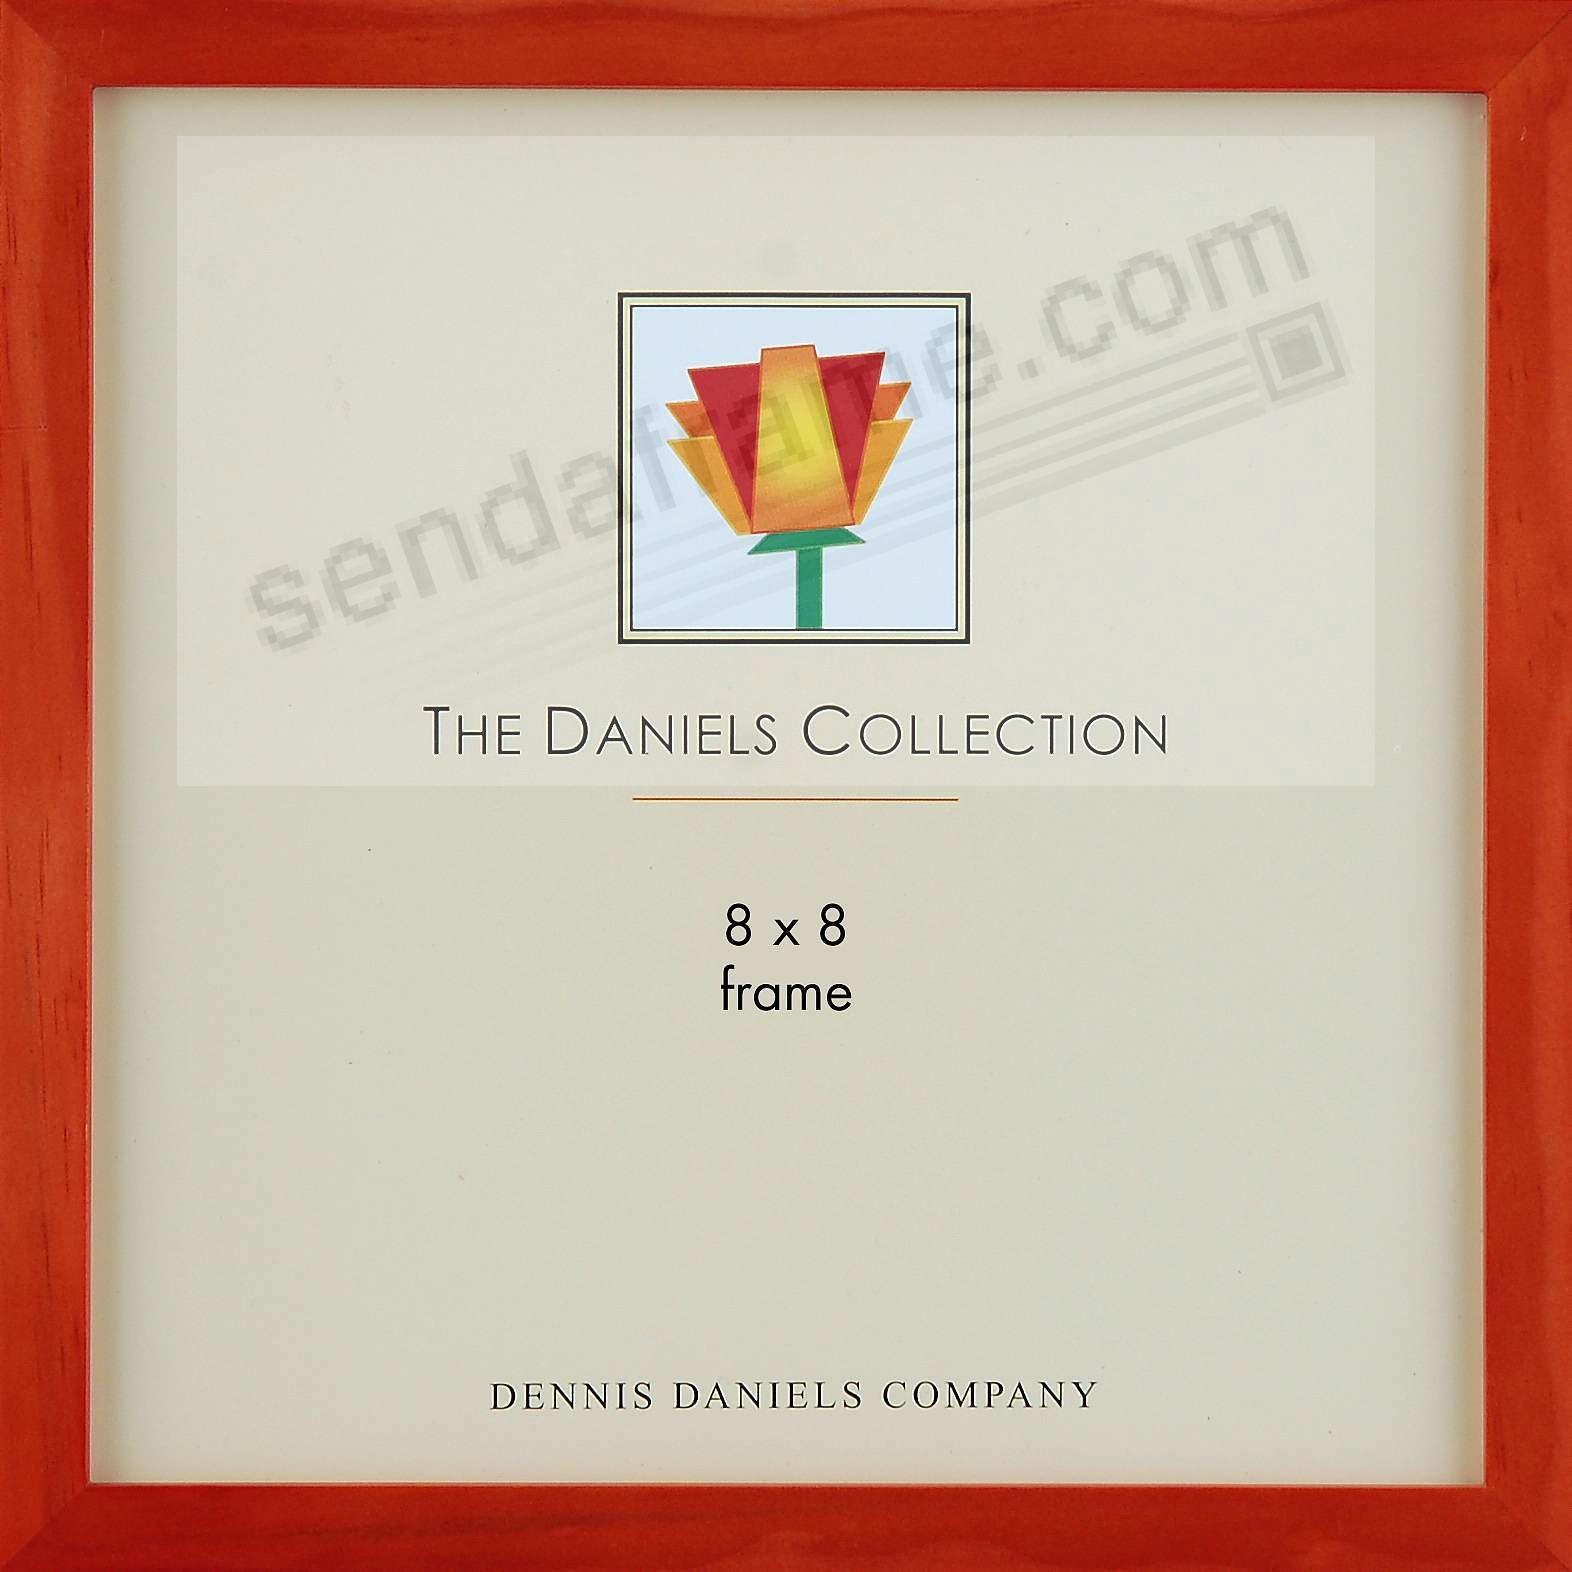 The Original DANIELS W41: Square Corner GALLERY WOODS Cherry finish 8x8 frame by Dennis Daniels®